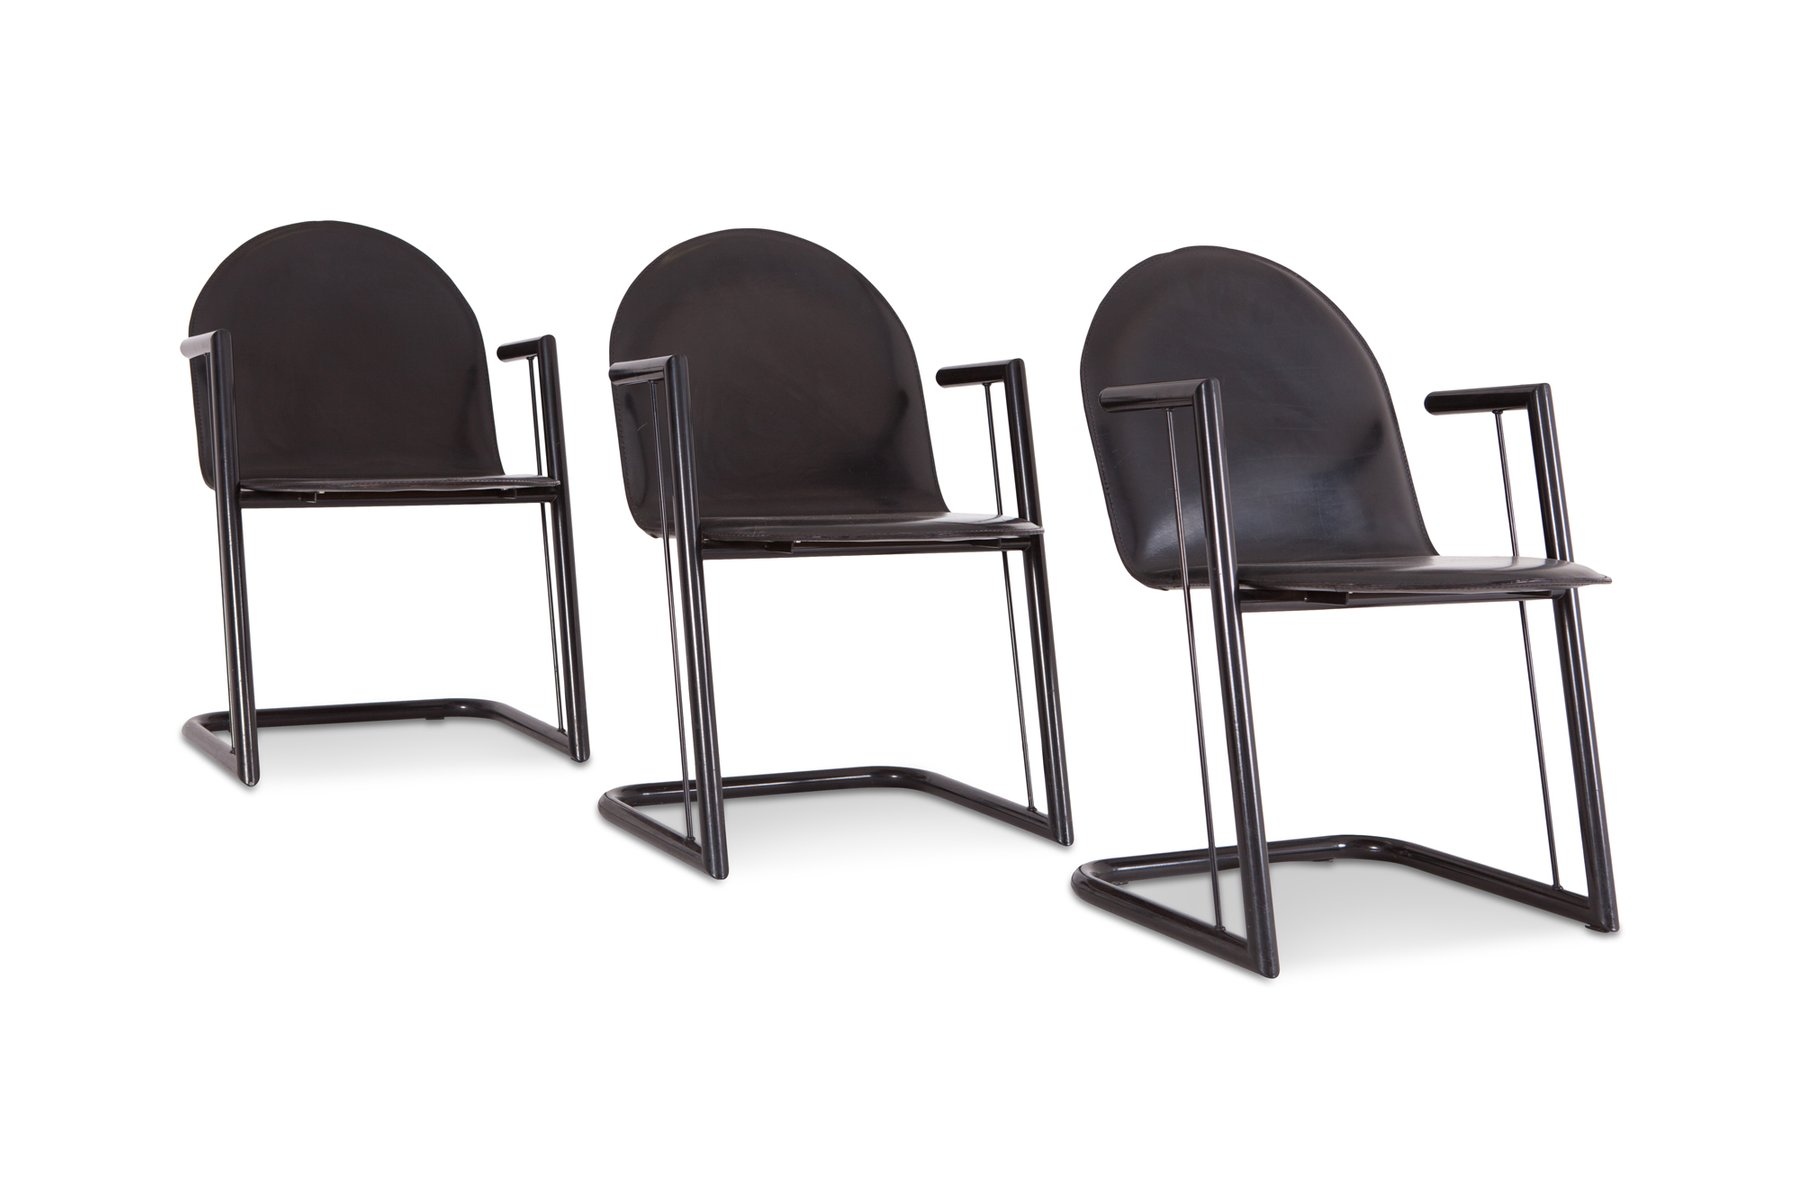 Vintage Black Leather Dining Chairs Set Of 6 For Sale At